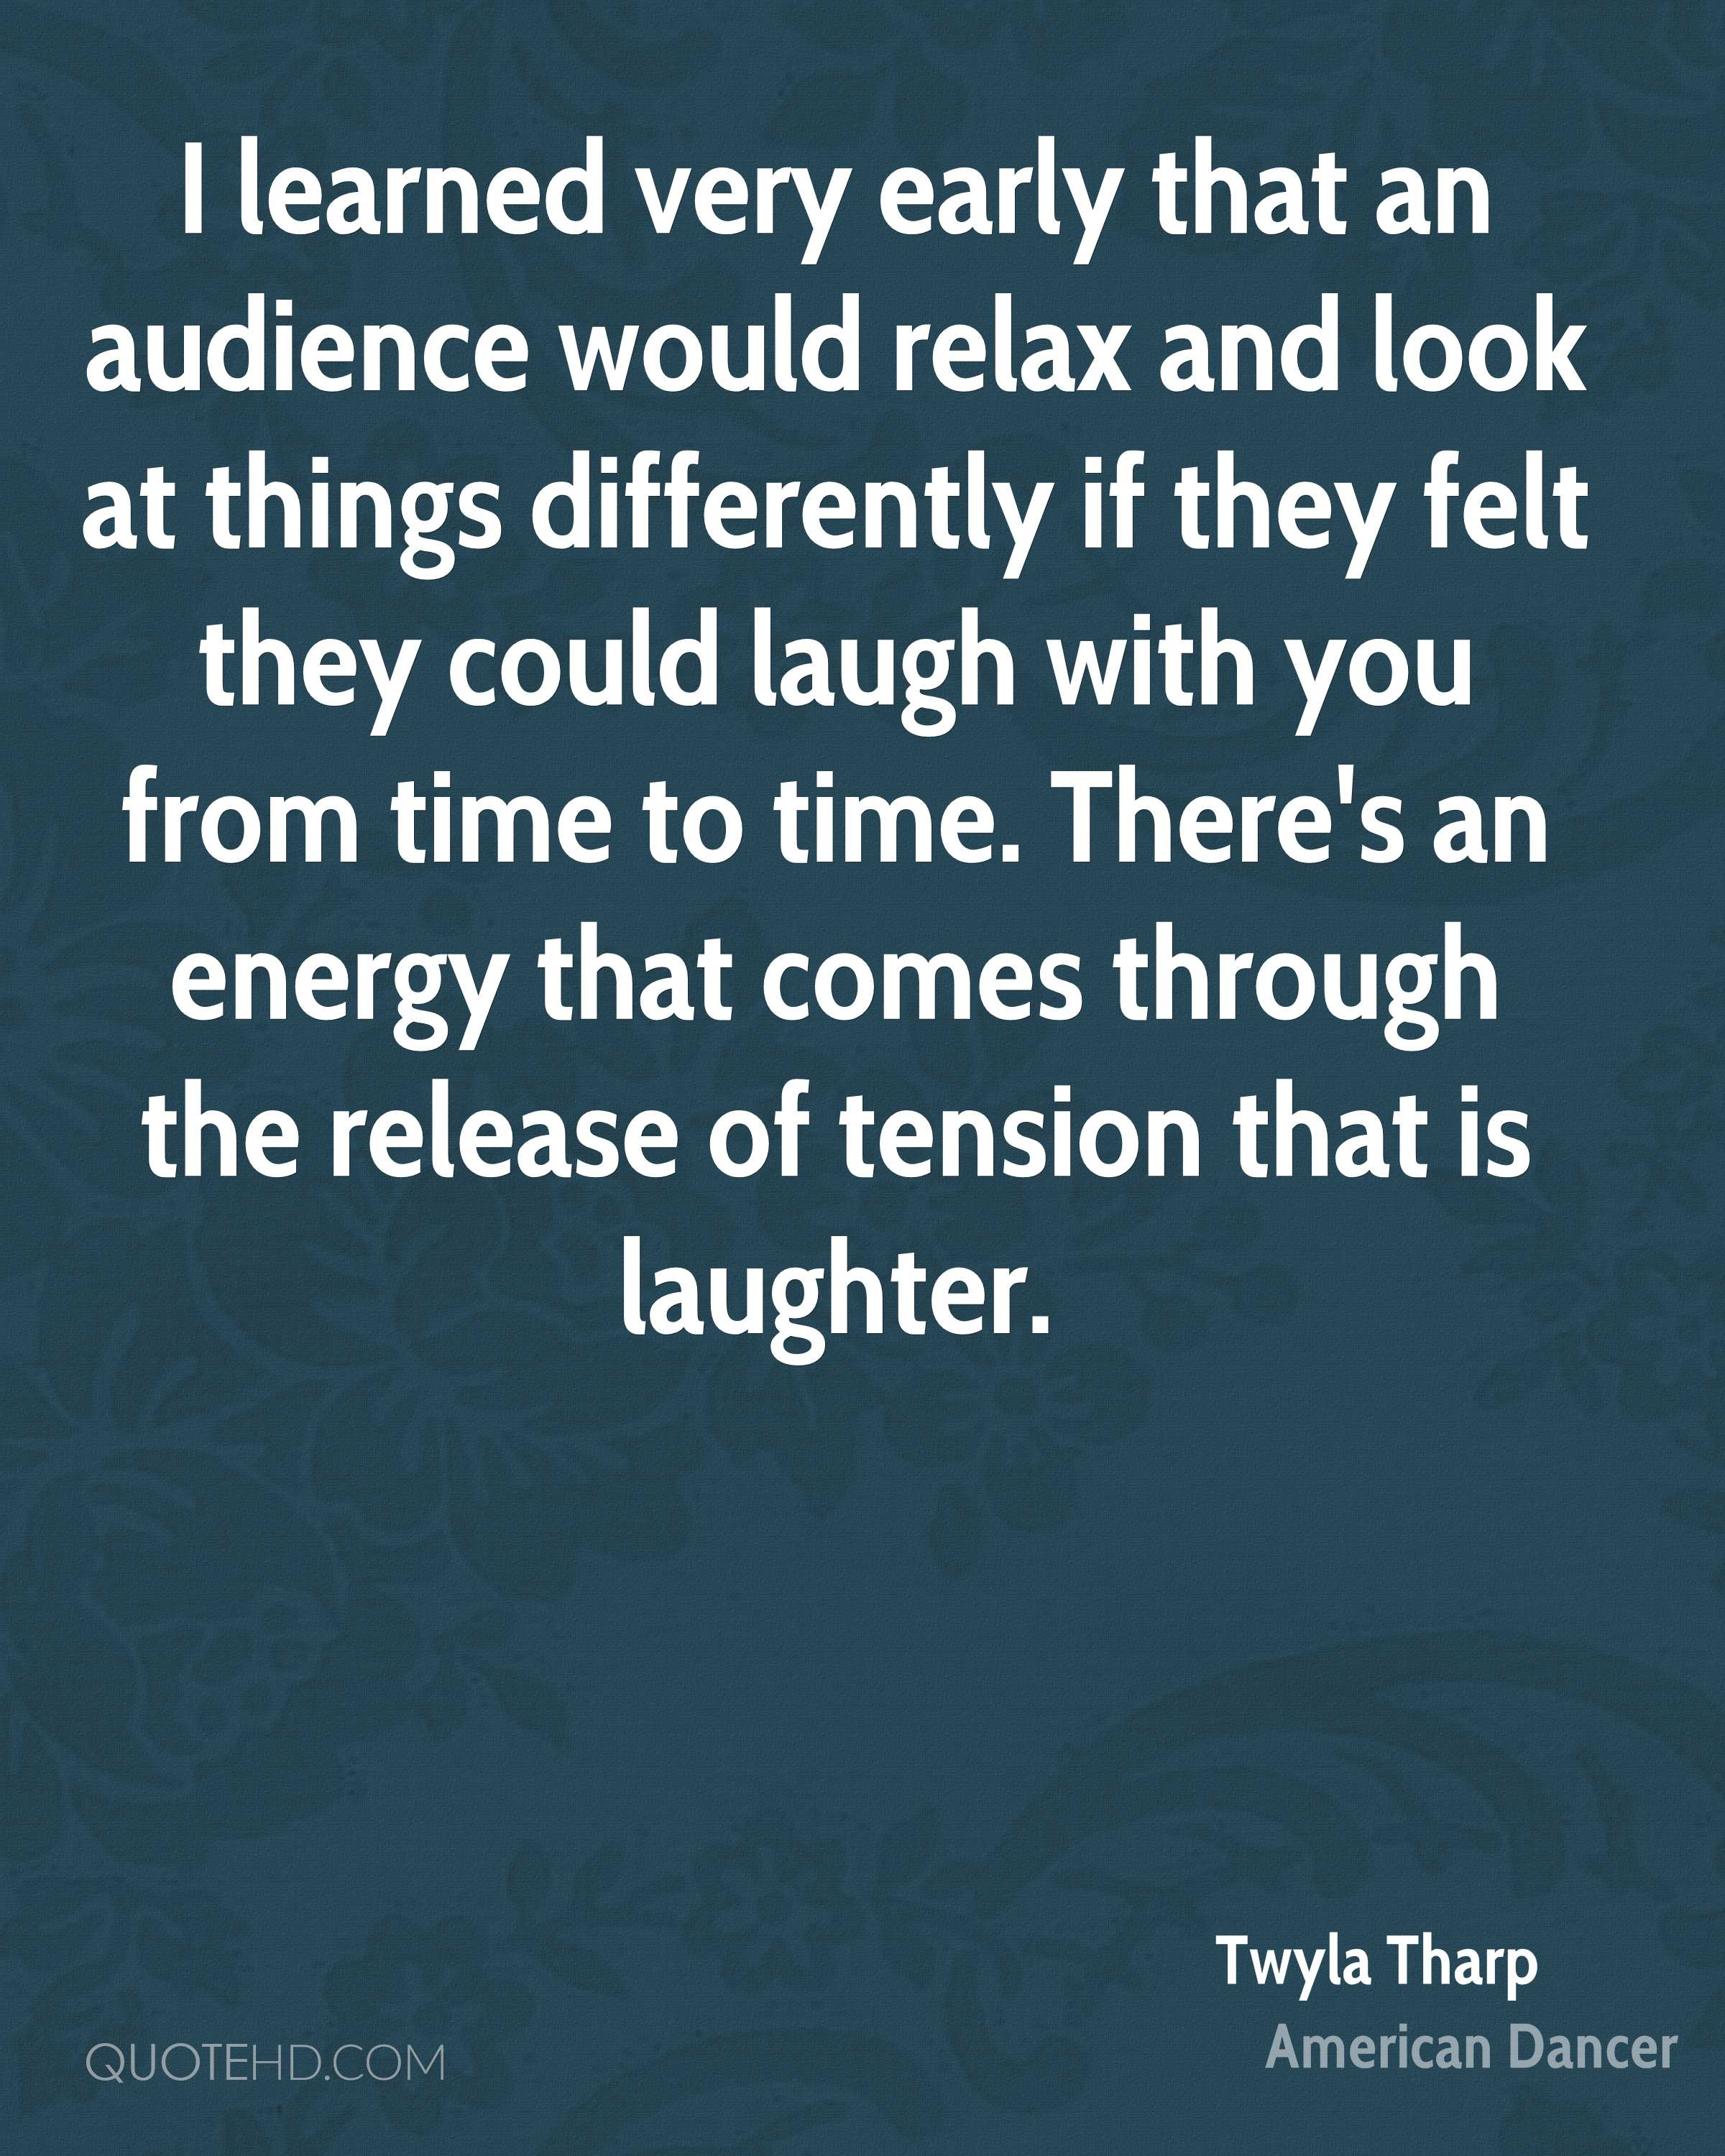 I learned very early that an audience would relax and look at things differently if they felt they could laugh with you from time to time. There's an energy that comes through the release of tension that is laughter.